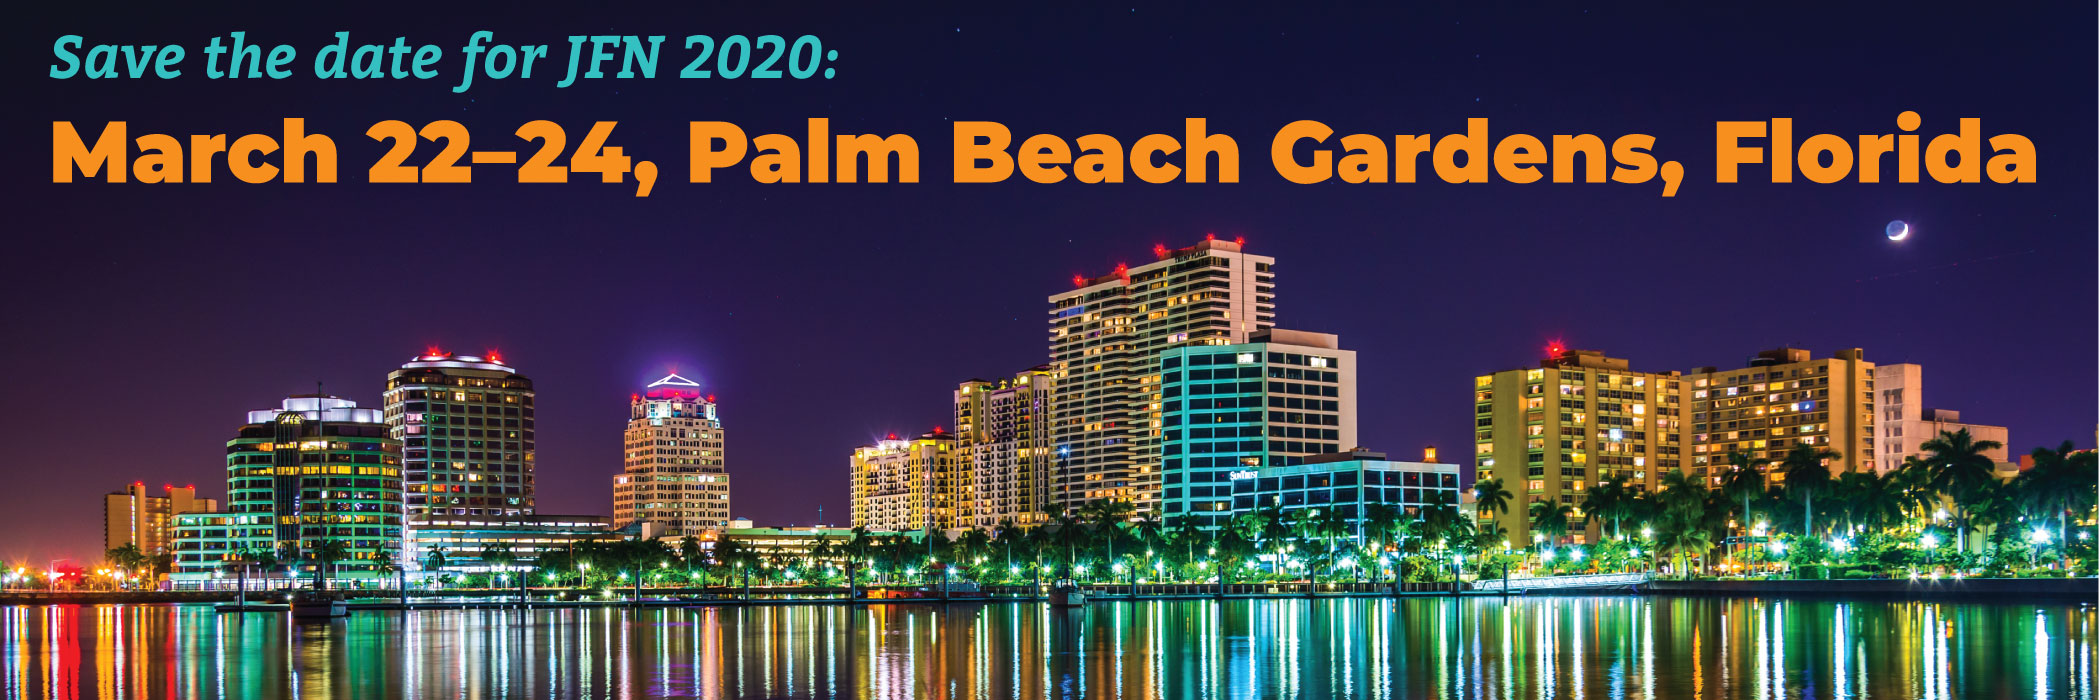 JFN 2020: March 22-24, Palm Beach Gardens, Florida